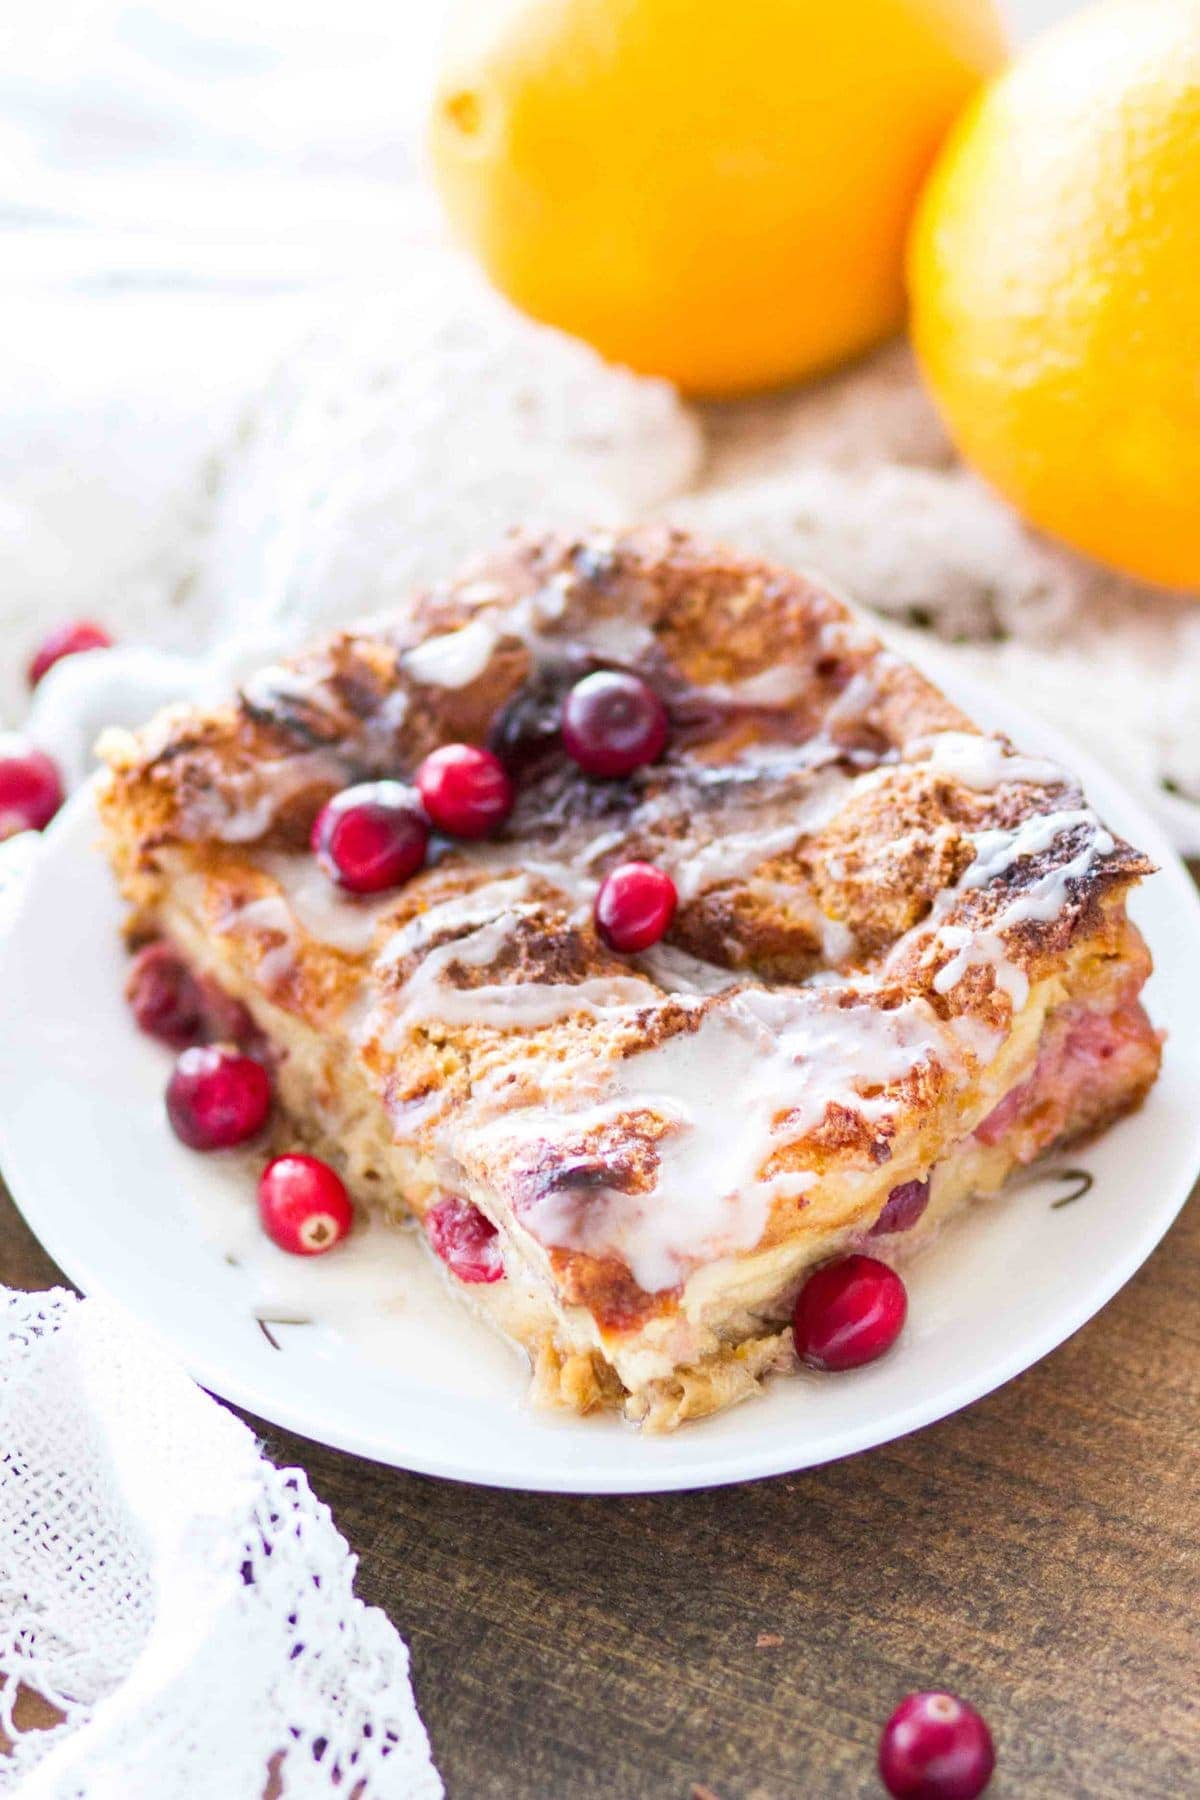 This easy homemade Cranberry Orange Bread Pudding is topped with an orange glaze, and is the perfect holiday dessert! This bread pudding recipe comes together quickly and is a total crowd pleaser!